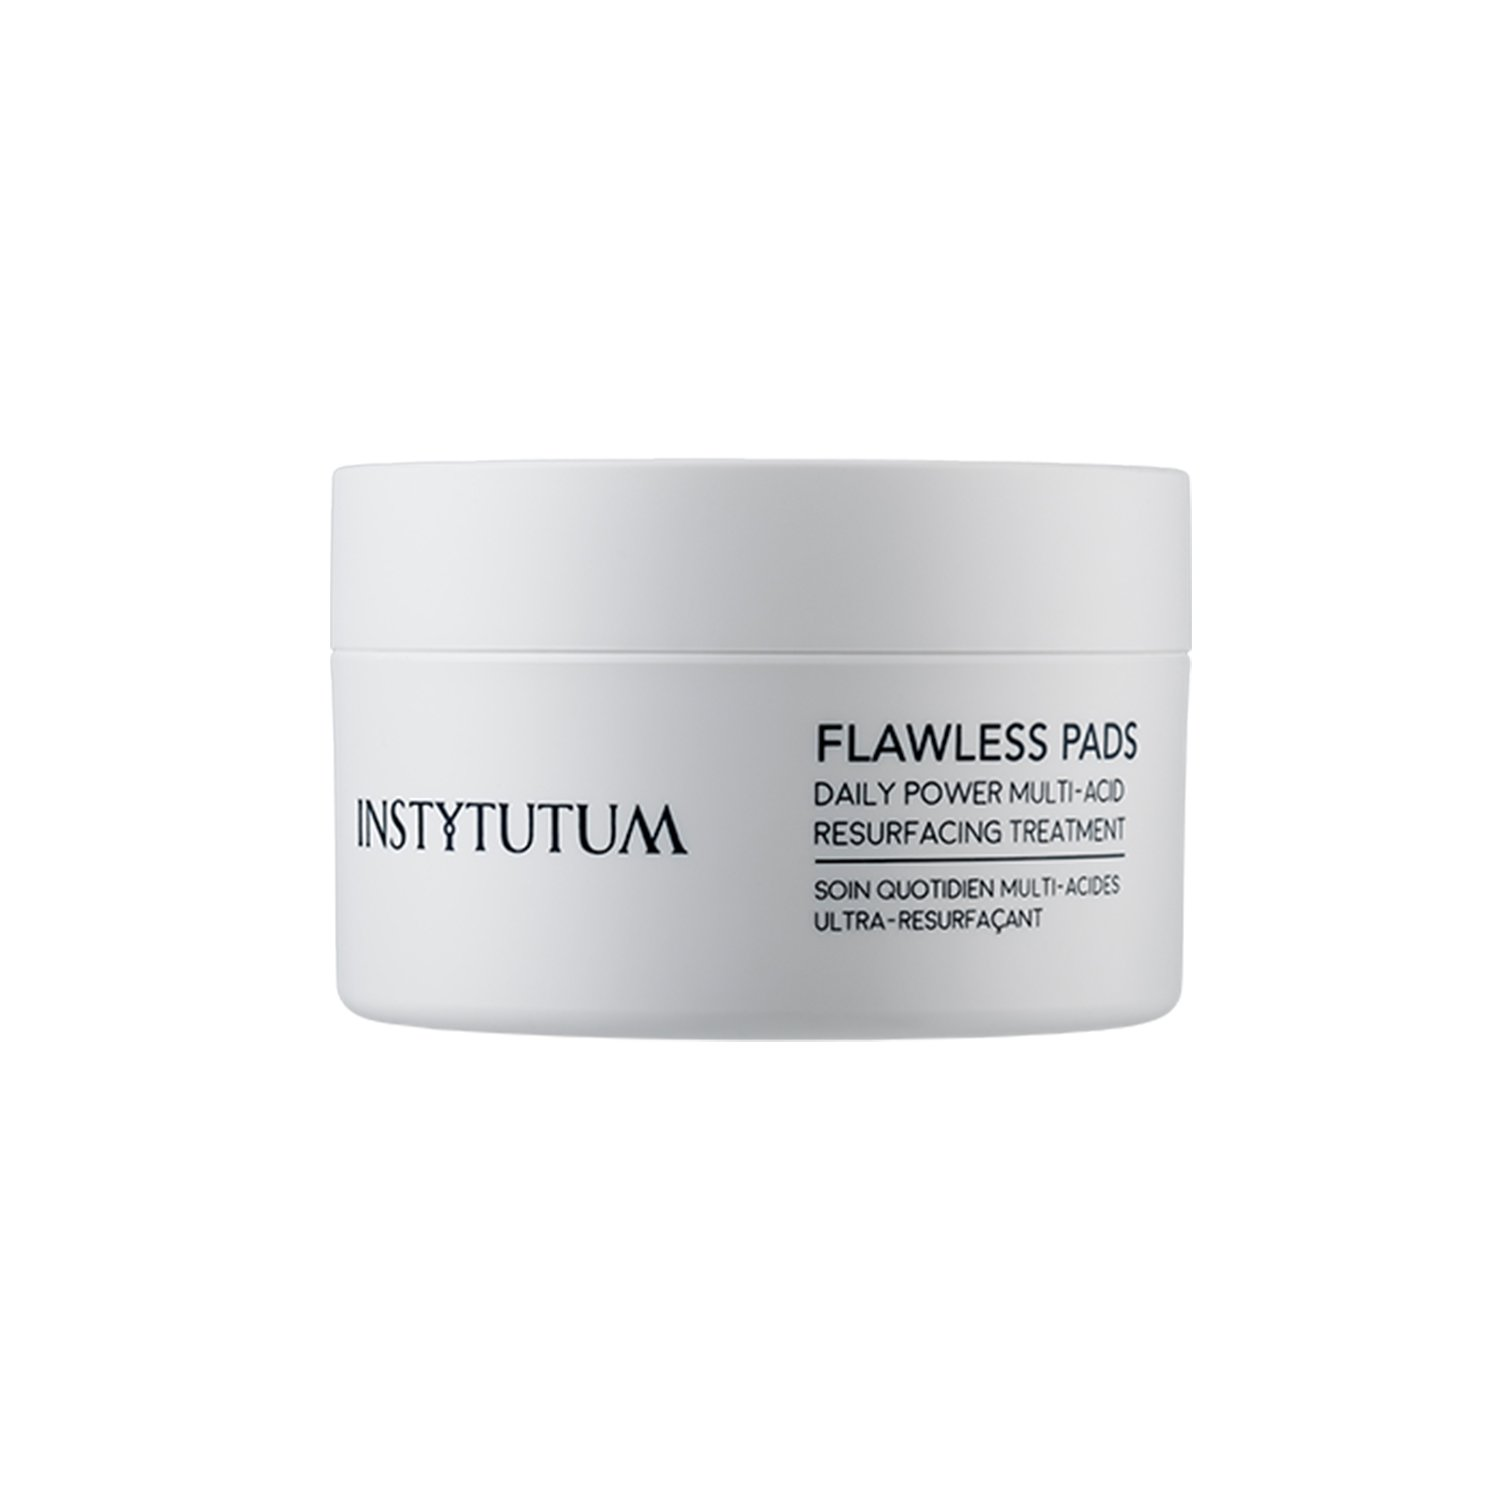 Instytutum Flawless Pads.